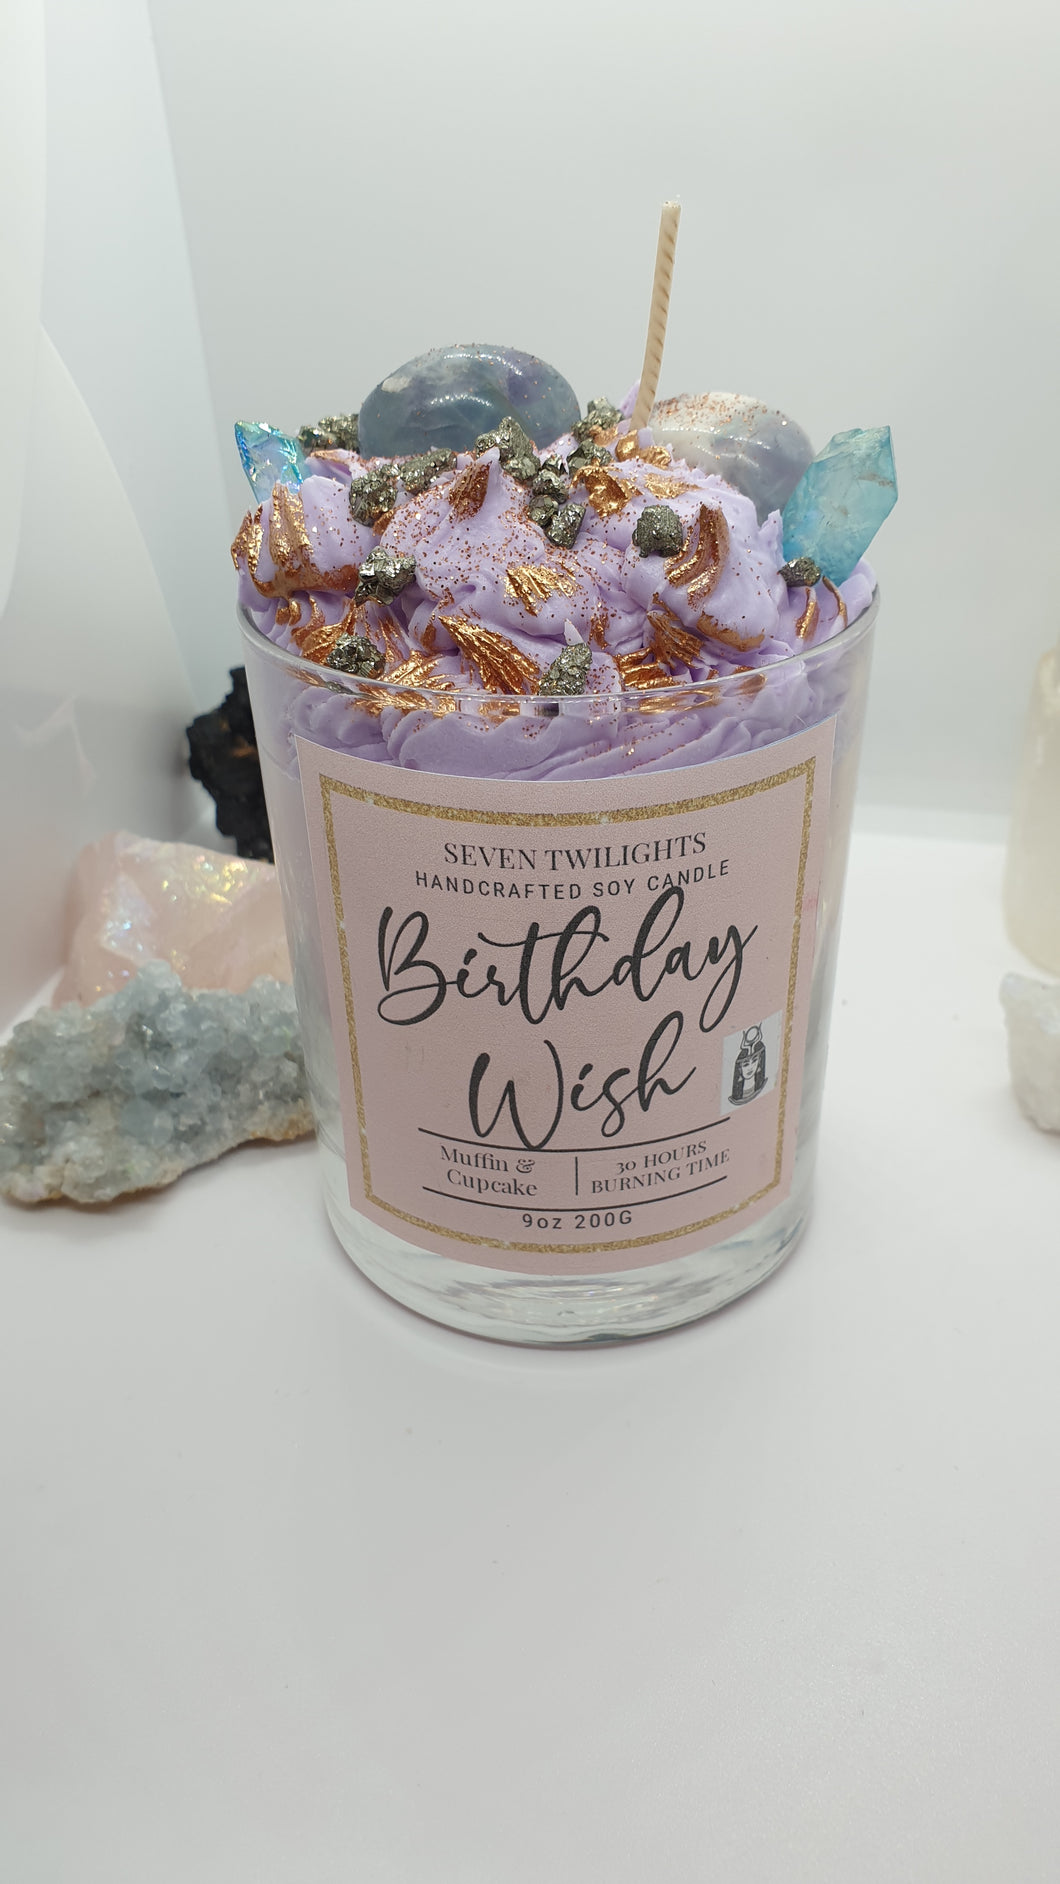 Birthday cake wish candle 30cl